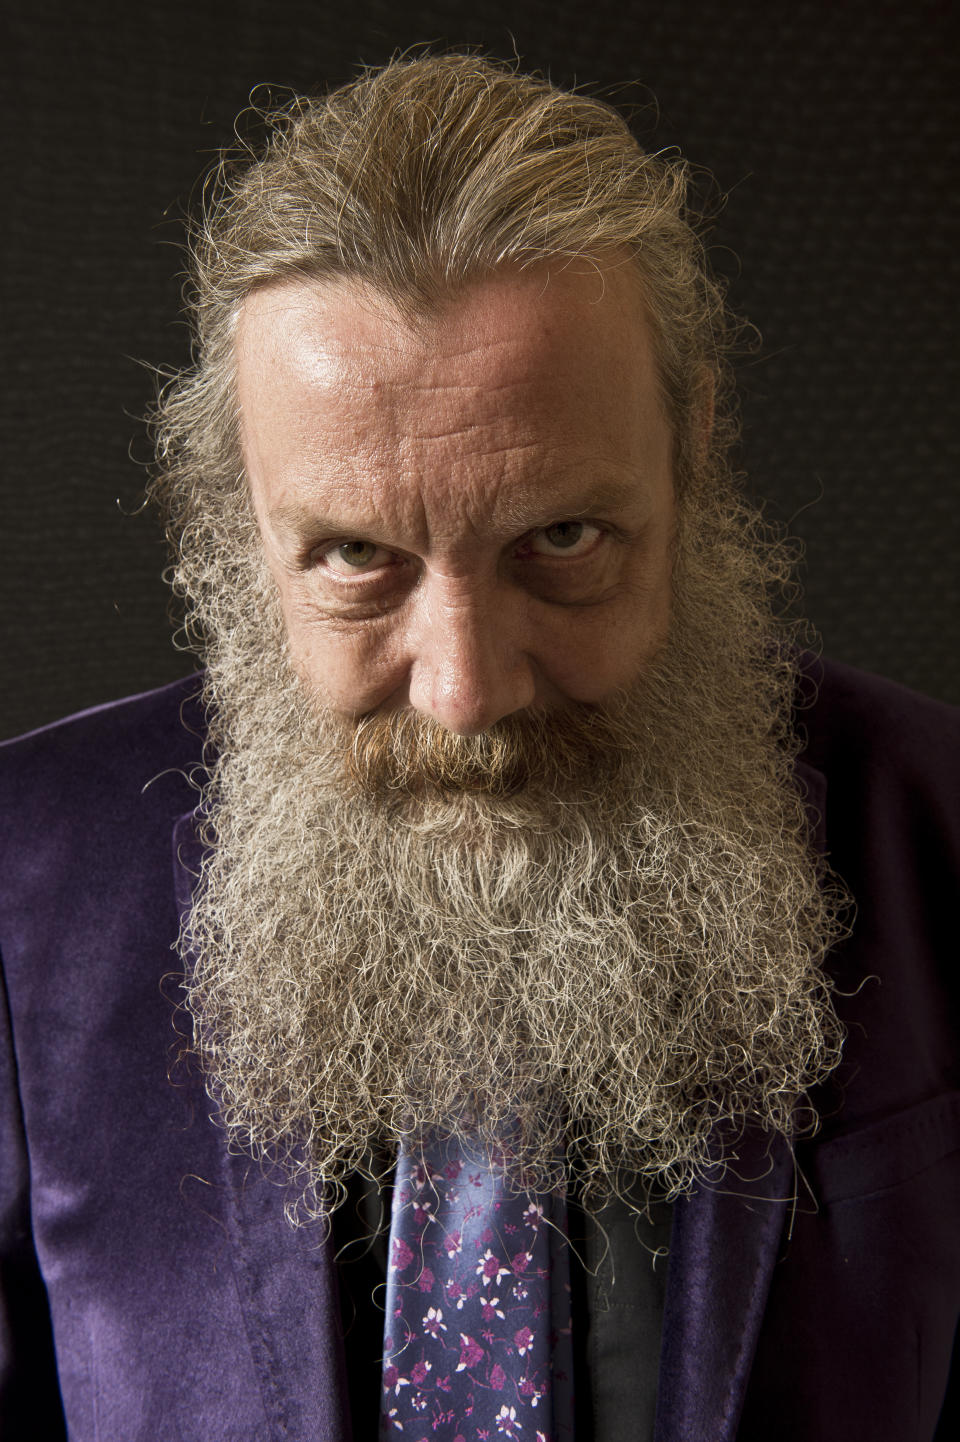 LONDON, UNITED KINGDOM - SEPTEMBER 6: Portrait of English comic book writer Alan Moore, taken on September 6, 2013. Moore is often considered the finest writer in the comics medium, and is best known for his graphic novels Watchmen and V For Vendetta. (Photo by Kevin Nixon/SFX Magazine/Future via Getty Images)